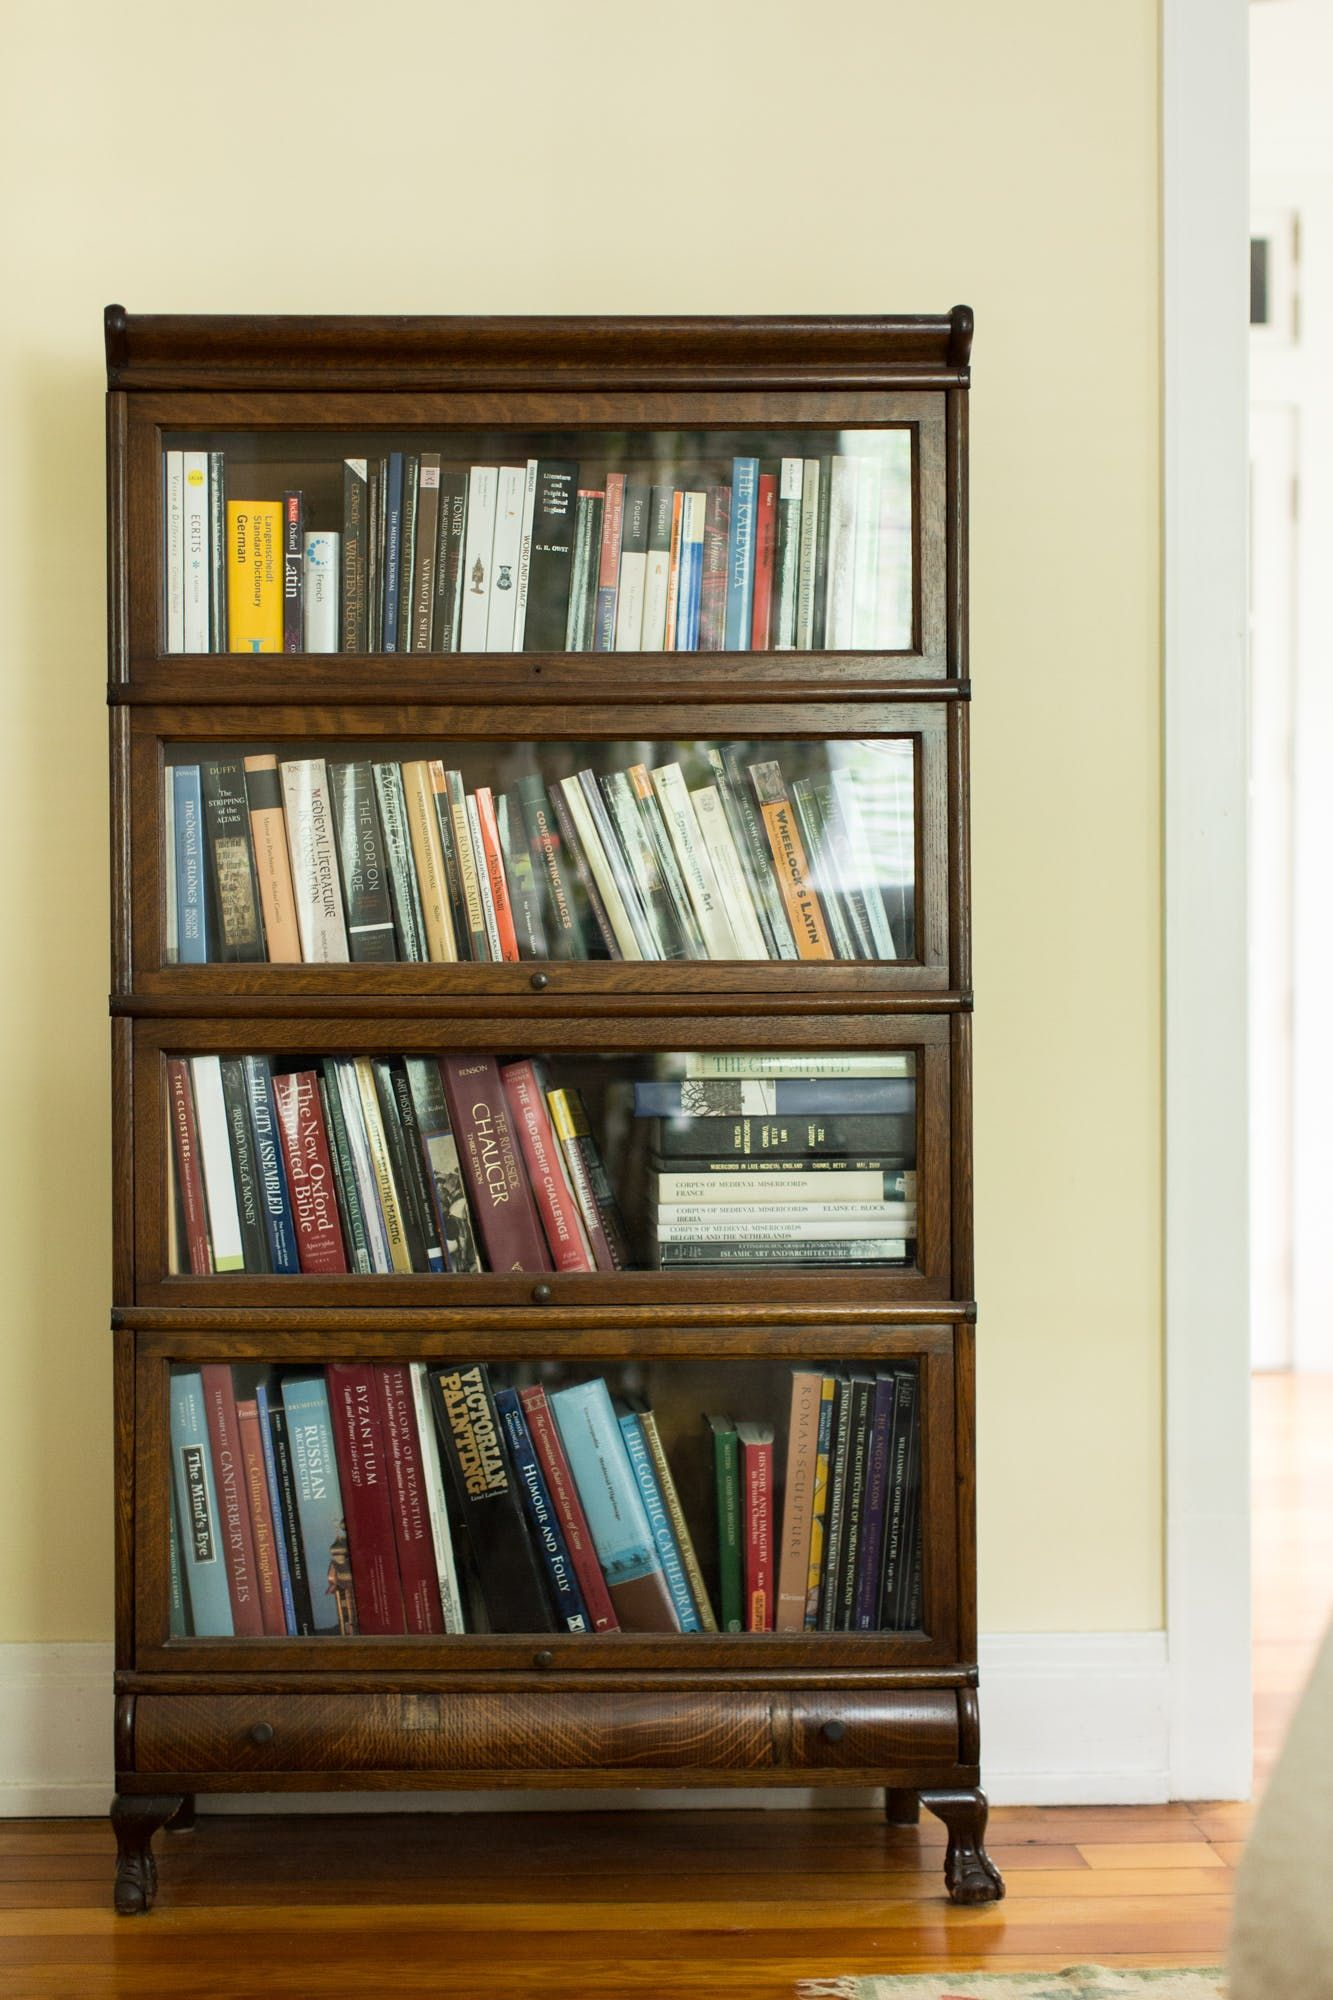 The bed and this bookcase are both family heirlooms.